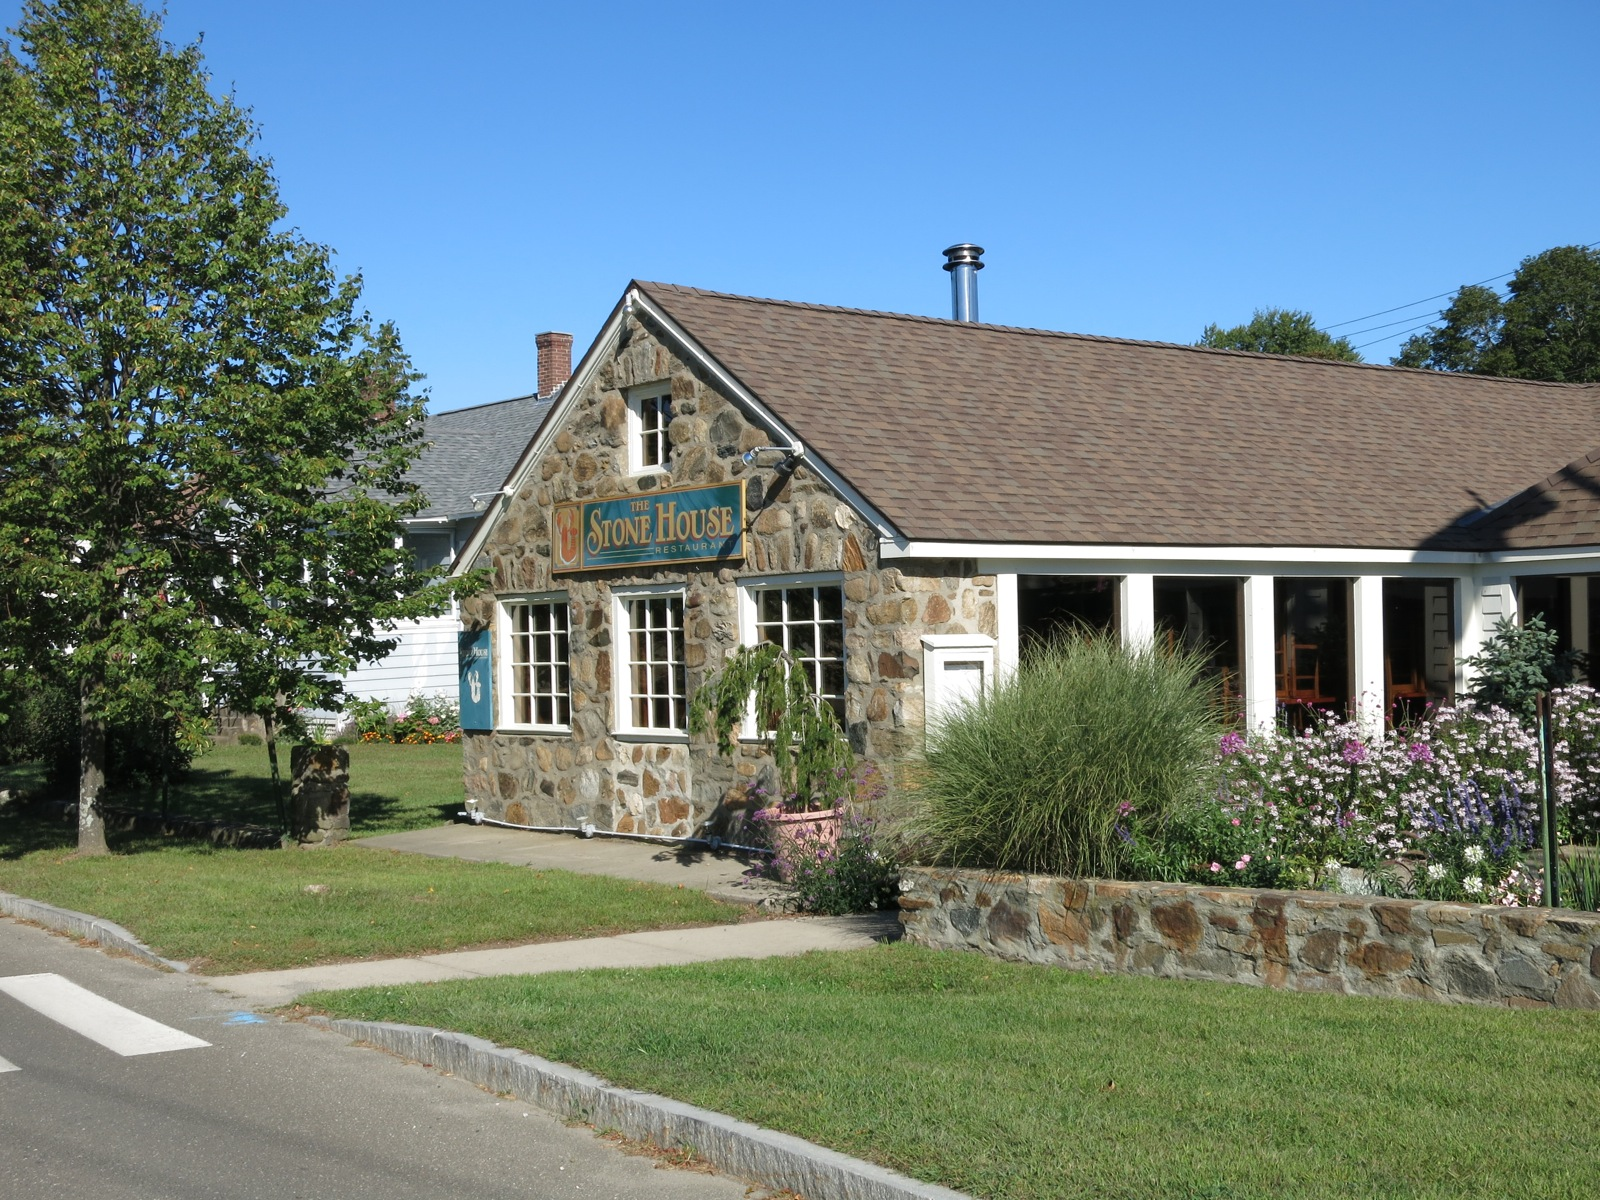 Eat at the Stonehouse Restaurant on a weekend getaway in Guilford CT.